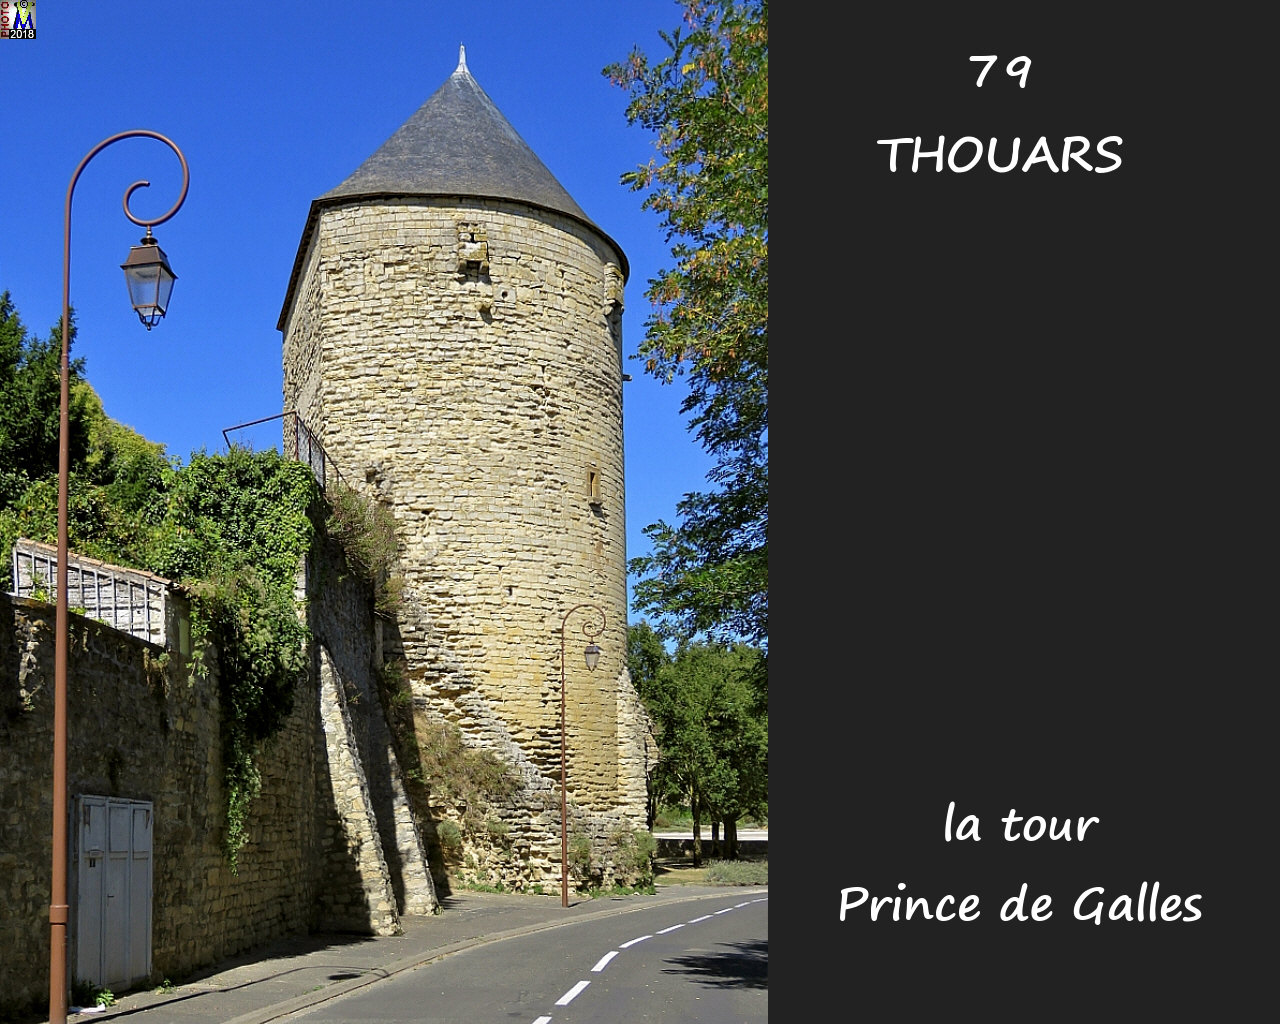 79THOUARS_TourPG_1004.jpg